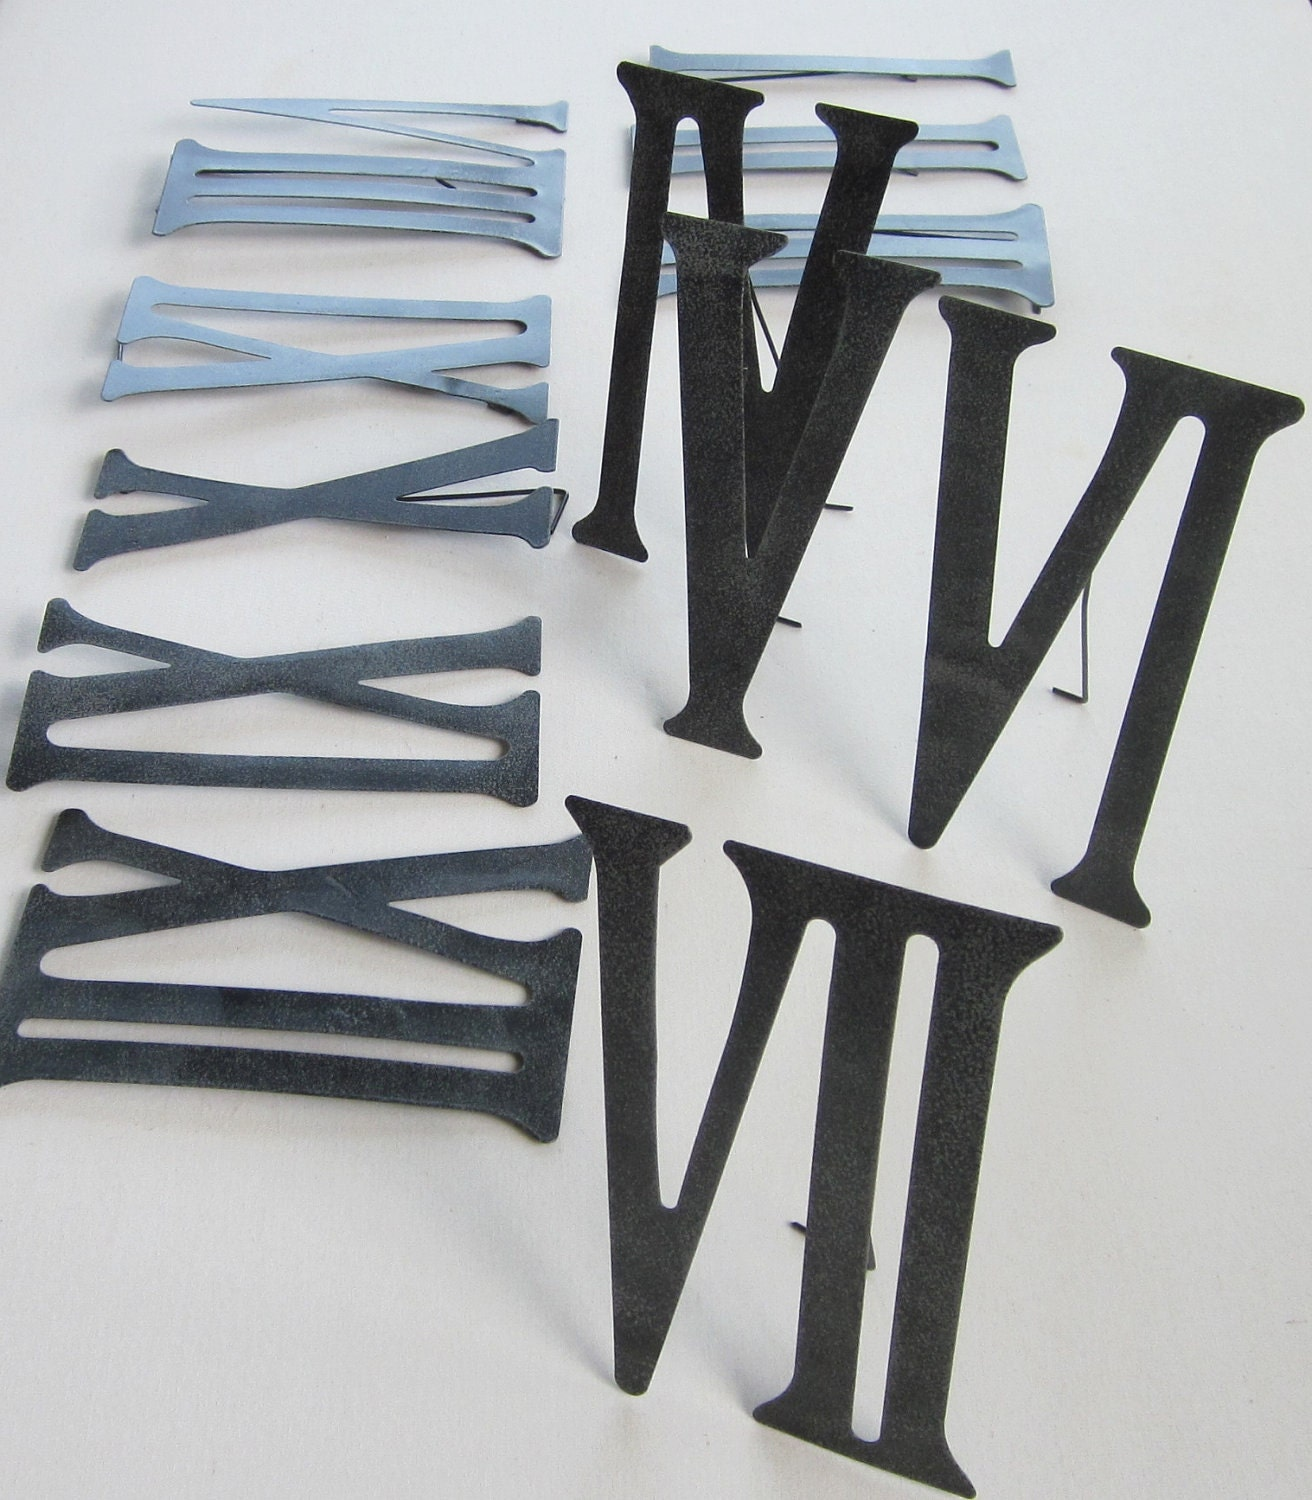 Roman Numerals Metal Numbers 1 to 12 by GardenBarn on Etsy